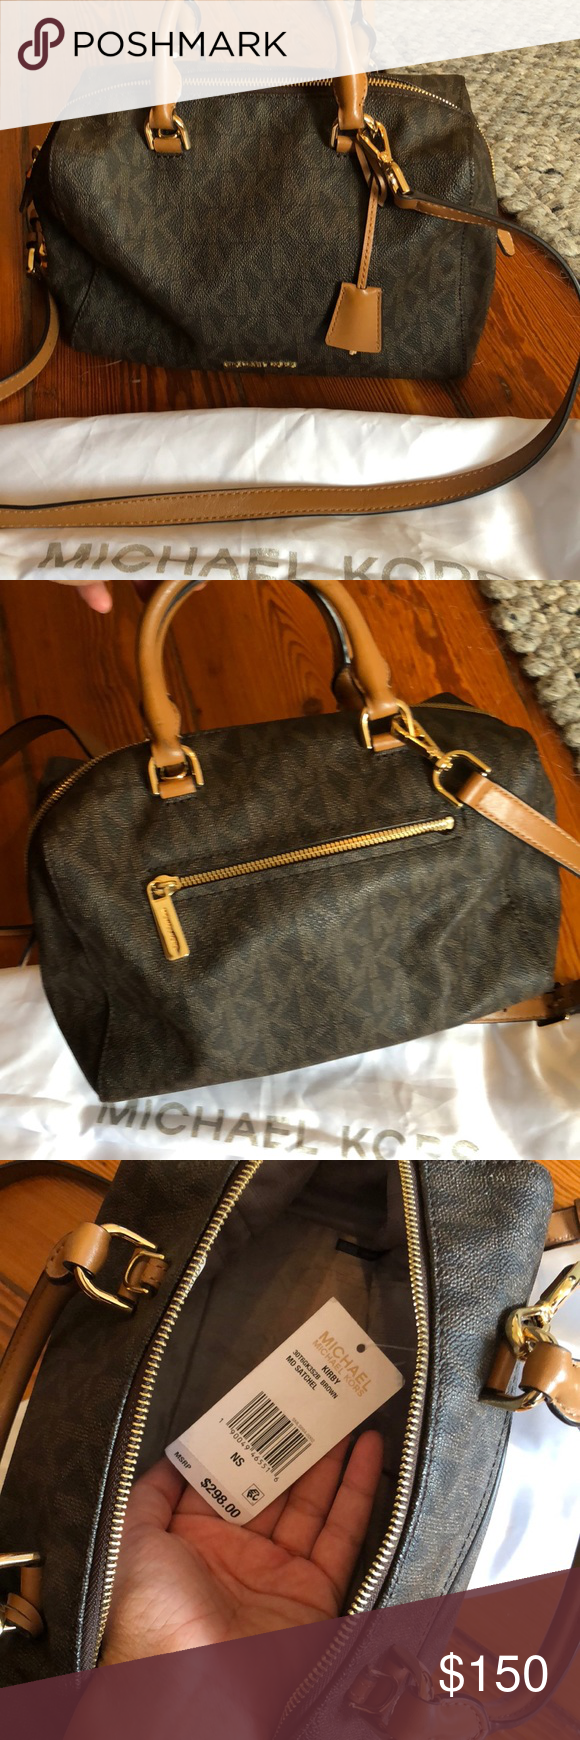 ef9a05292b MICHAEL KORS MONOGRAMMED SATCHEL! Only used a couple of times